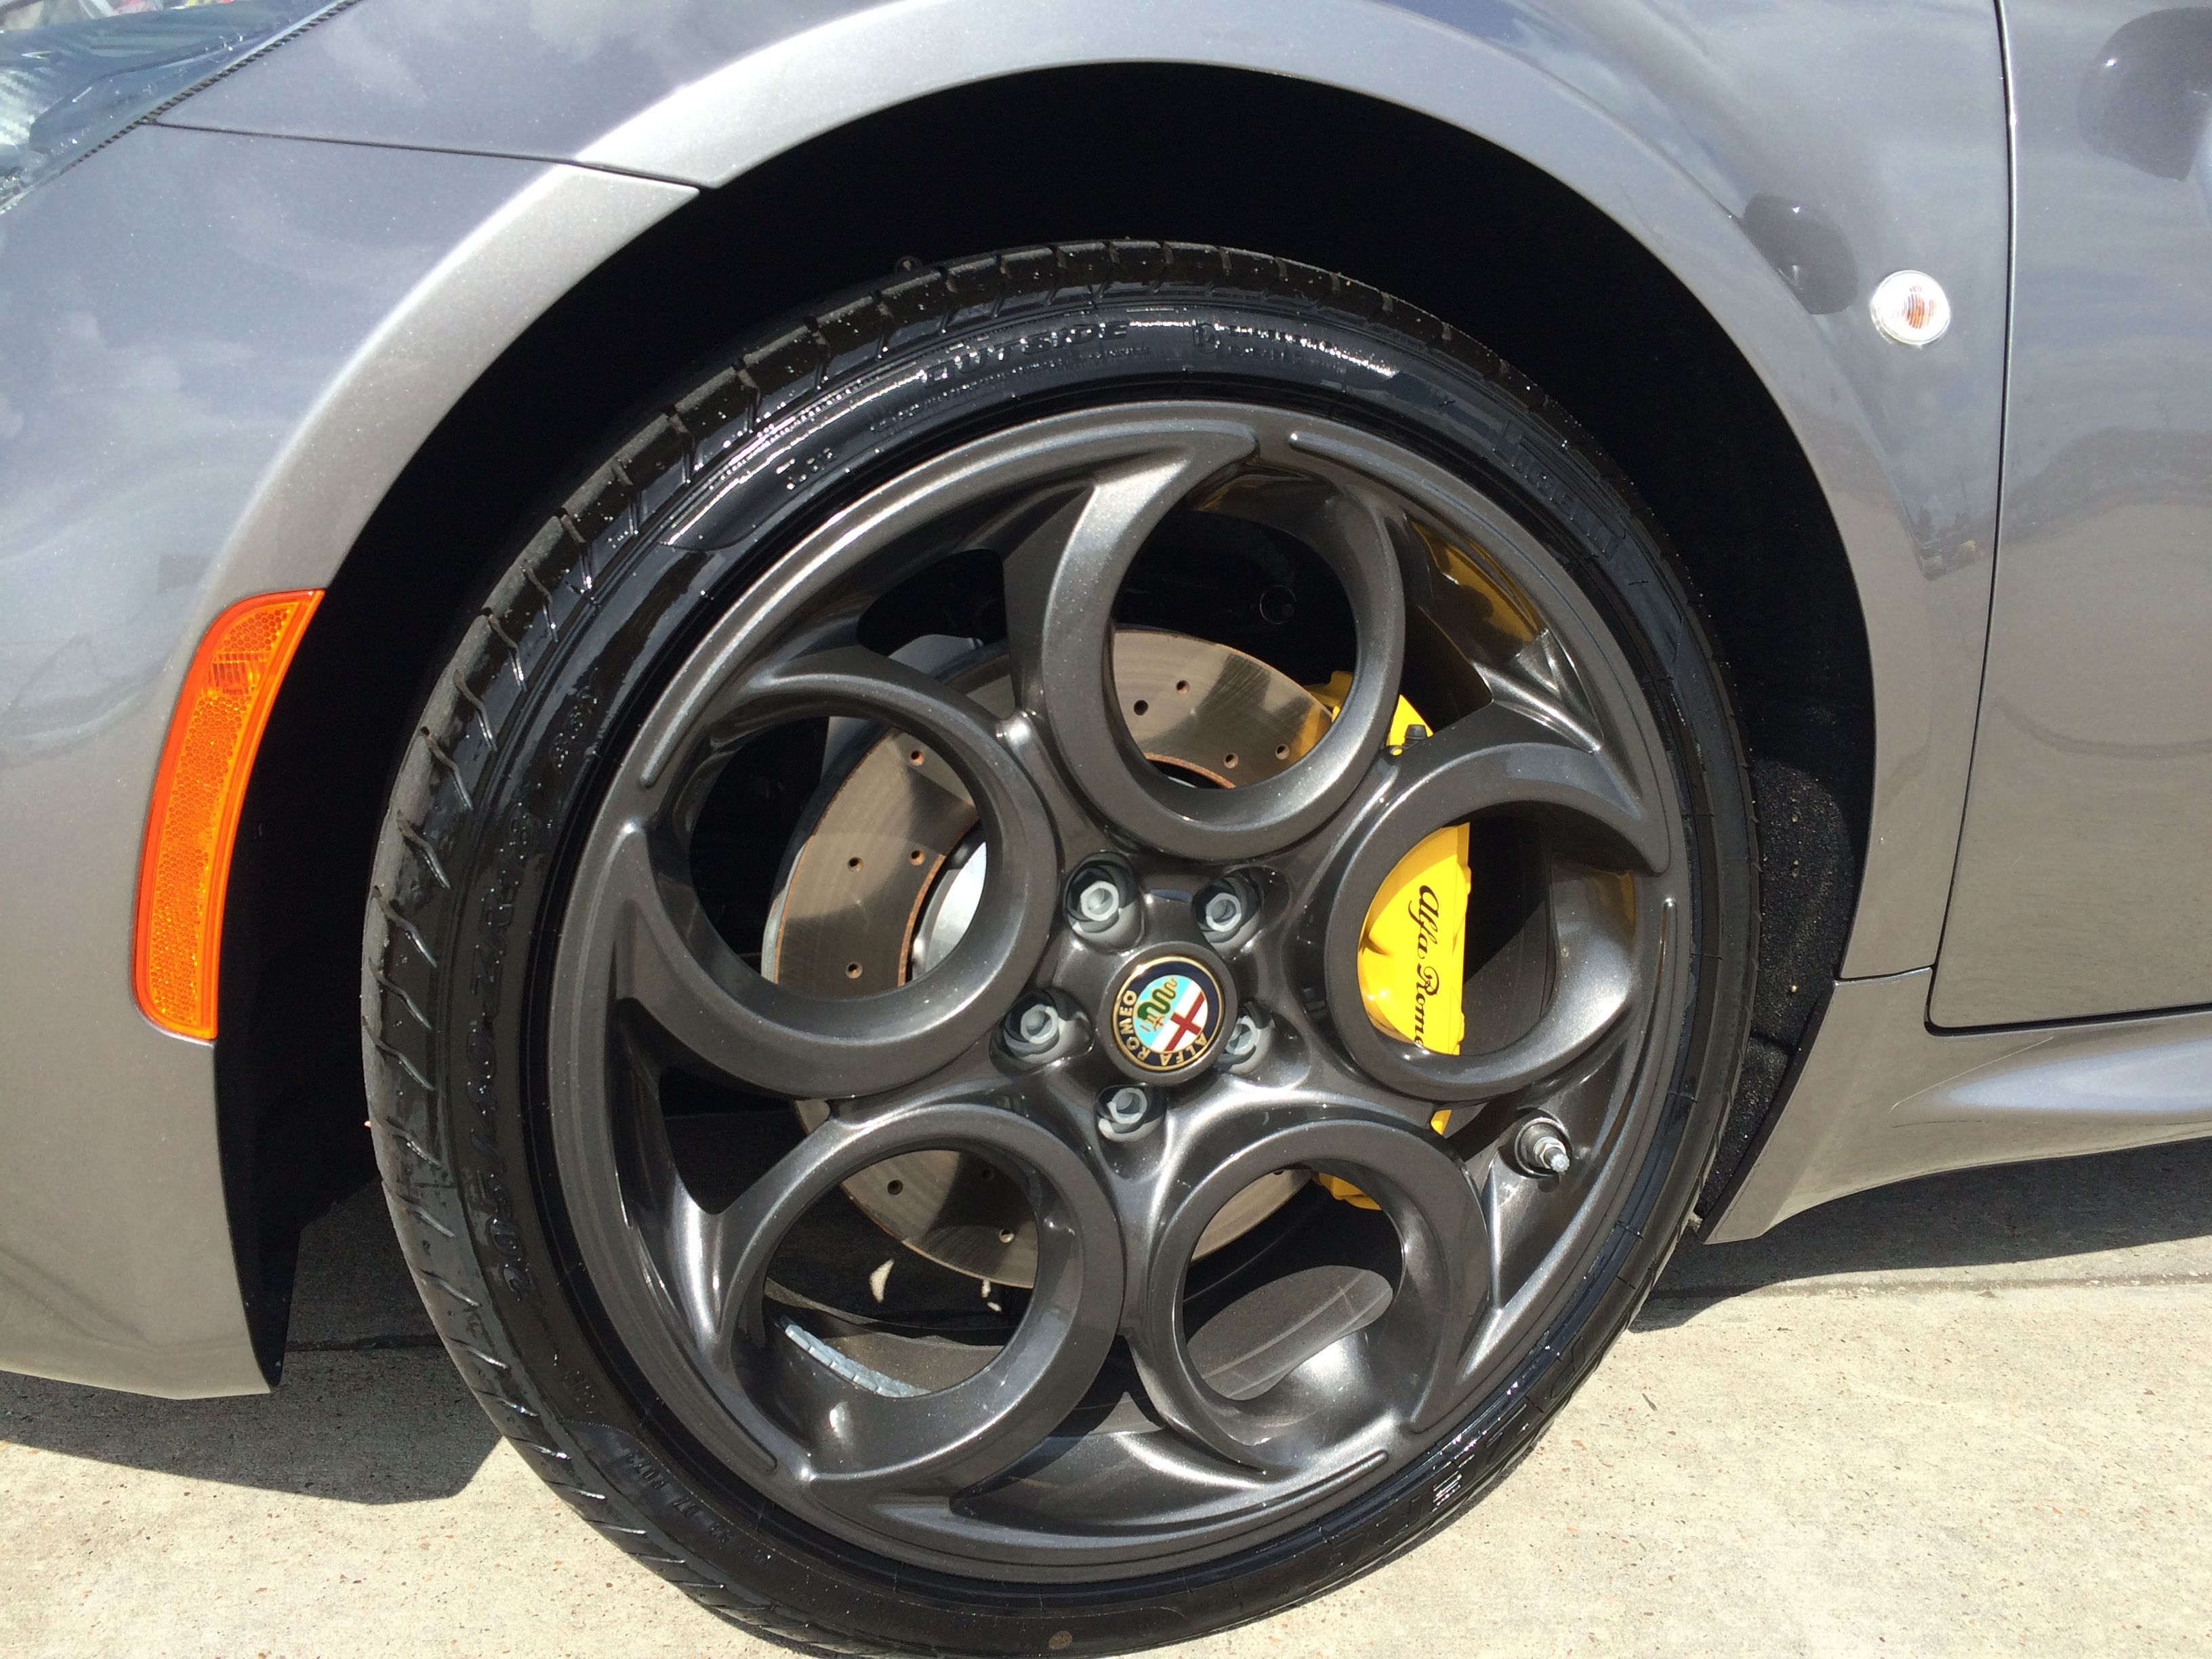 4C Wheels With Yellow Calipers